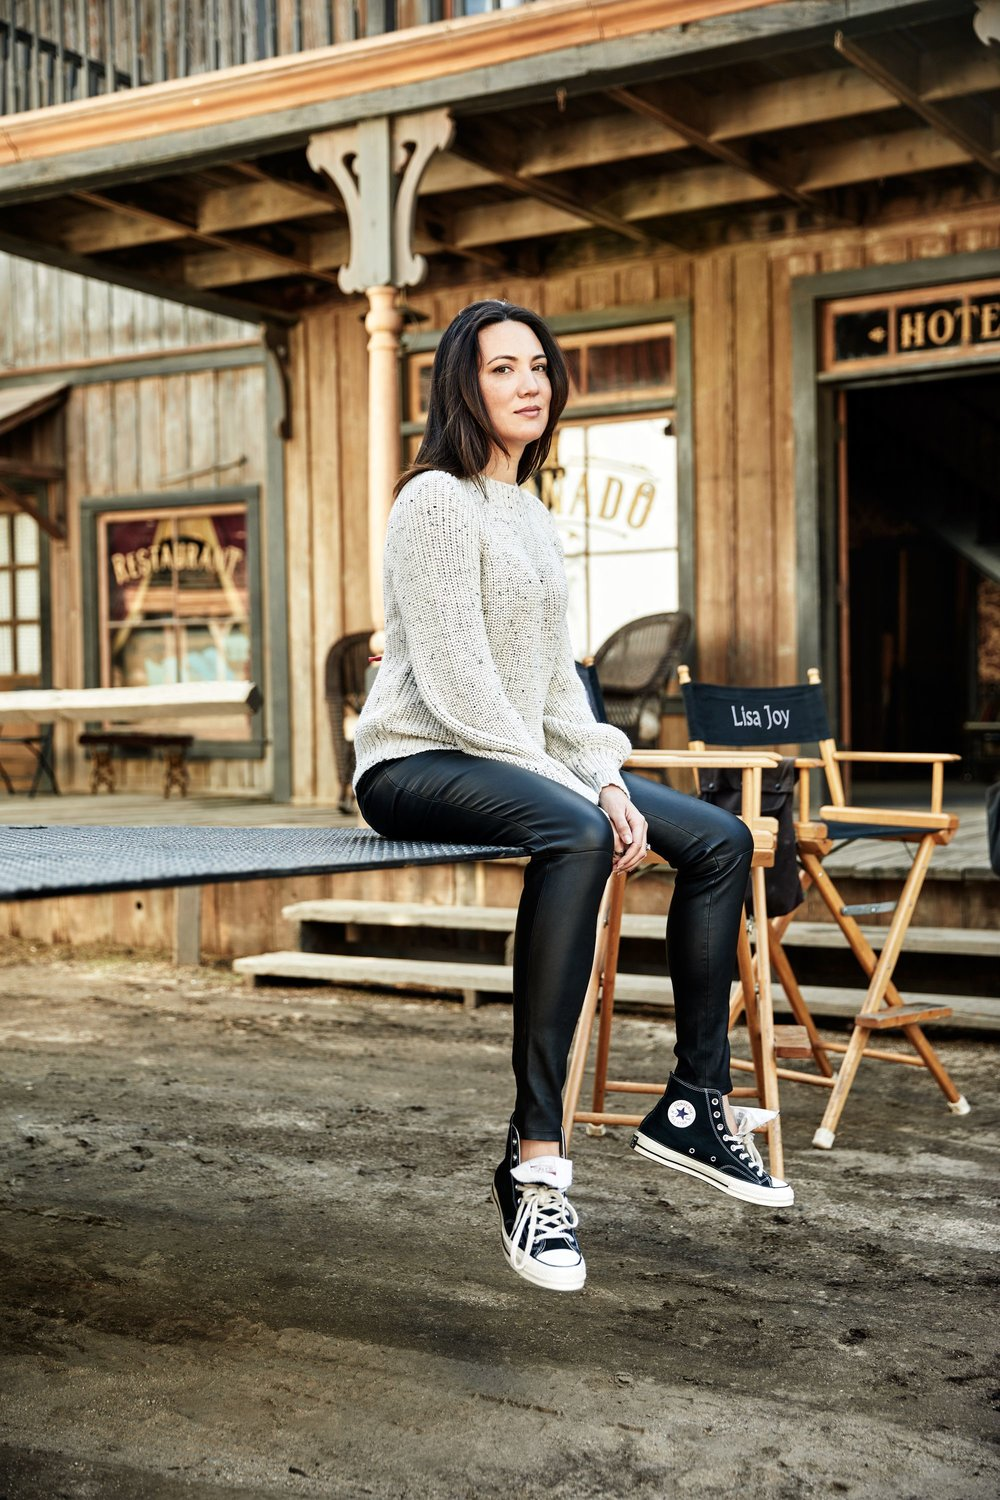 Lisa Joy on the 'Westworld' set. Image via Elle.